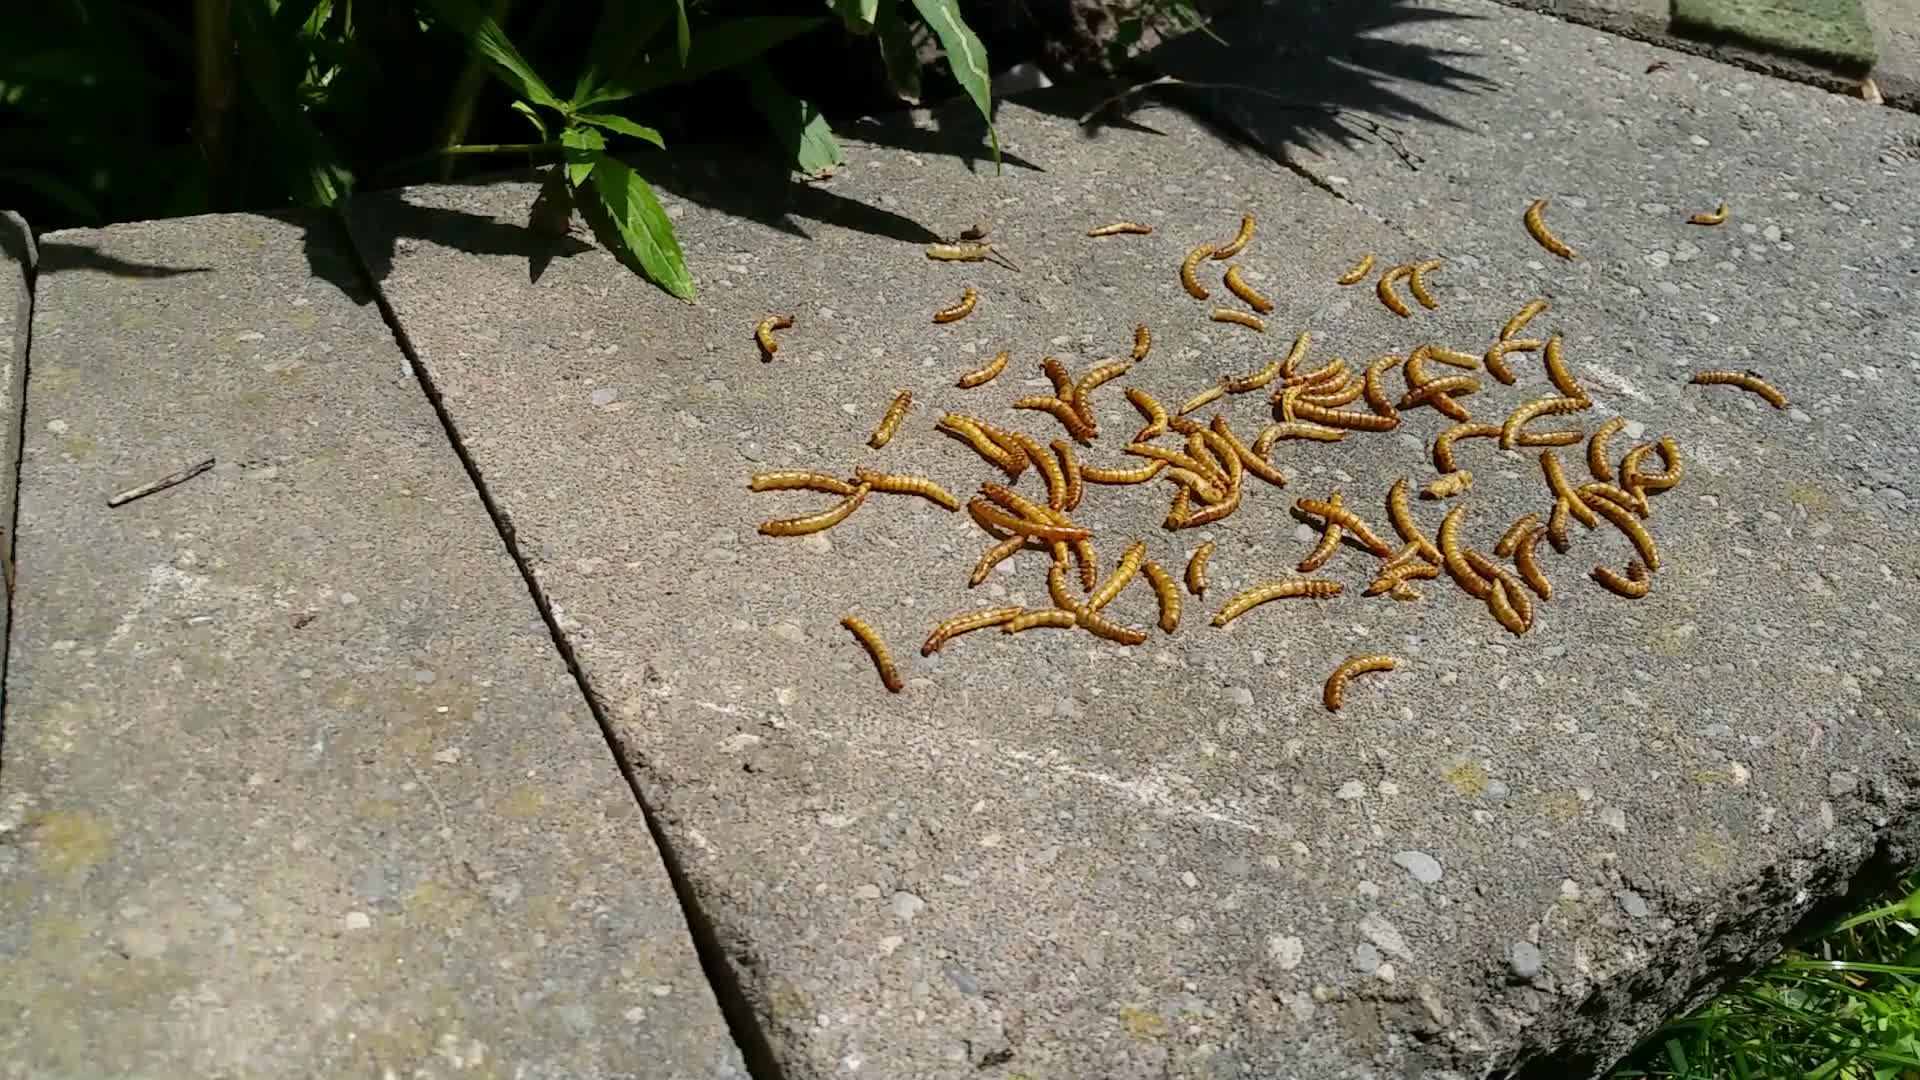 BACK OFF, GET YOUR OWN MEALWORM GIFs